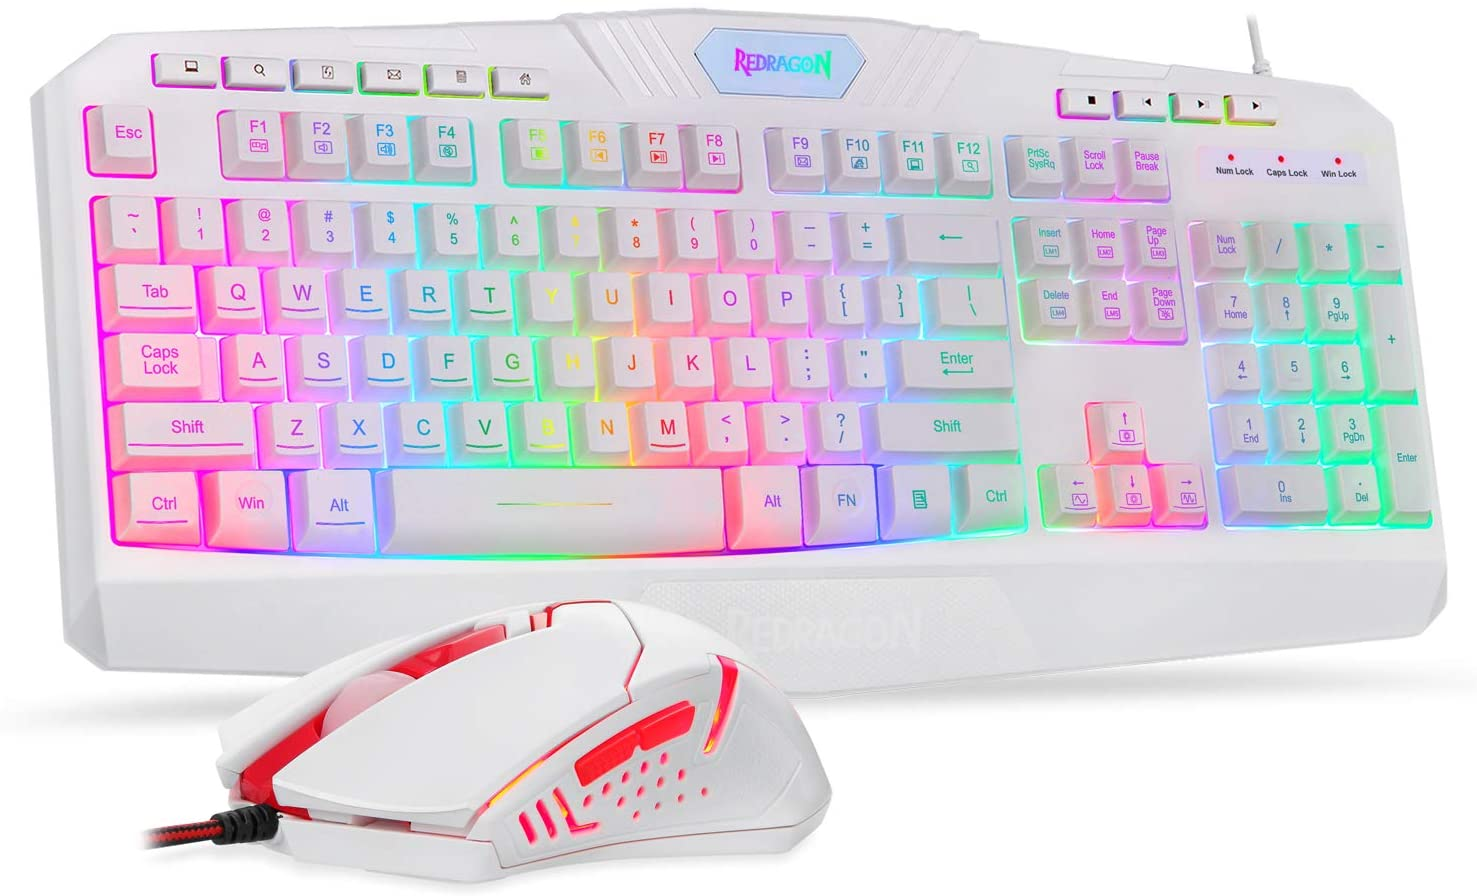 Redragon S101 Wired Gaming Keyboard and Mouse Combo RGB Backlit Gaming Keyboard with Multimedia Keys Wrist Rest and Red Backlit Gaming Mouse 3200 DPI for Windows PC Gamers (White): Computers & Accessories